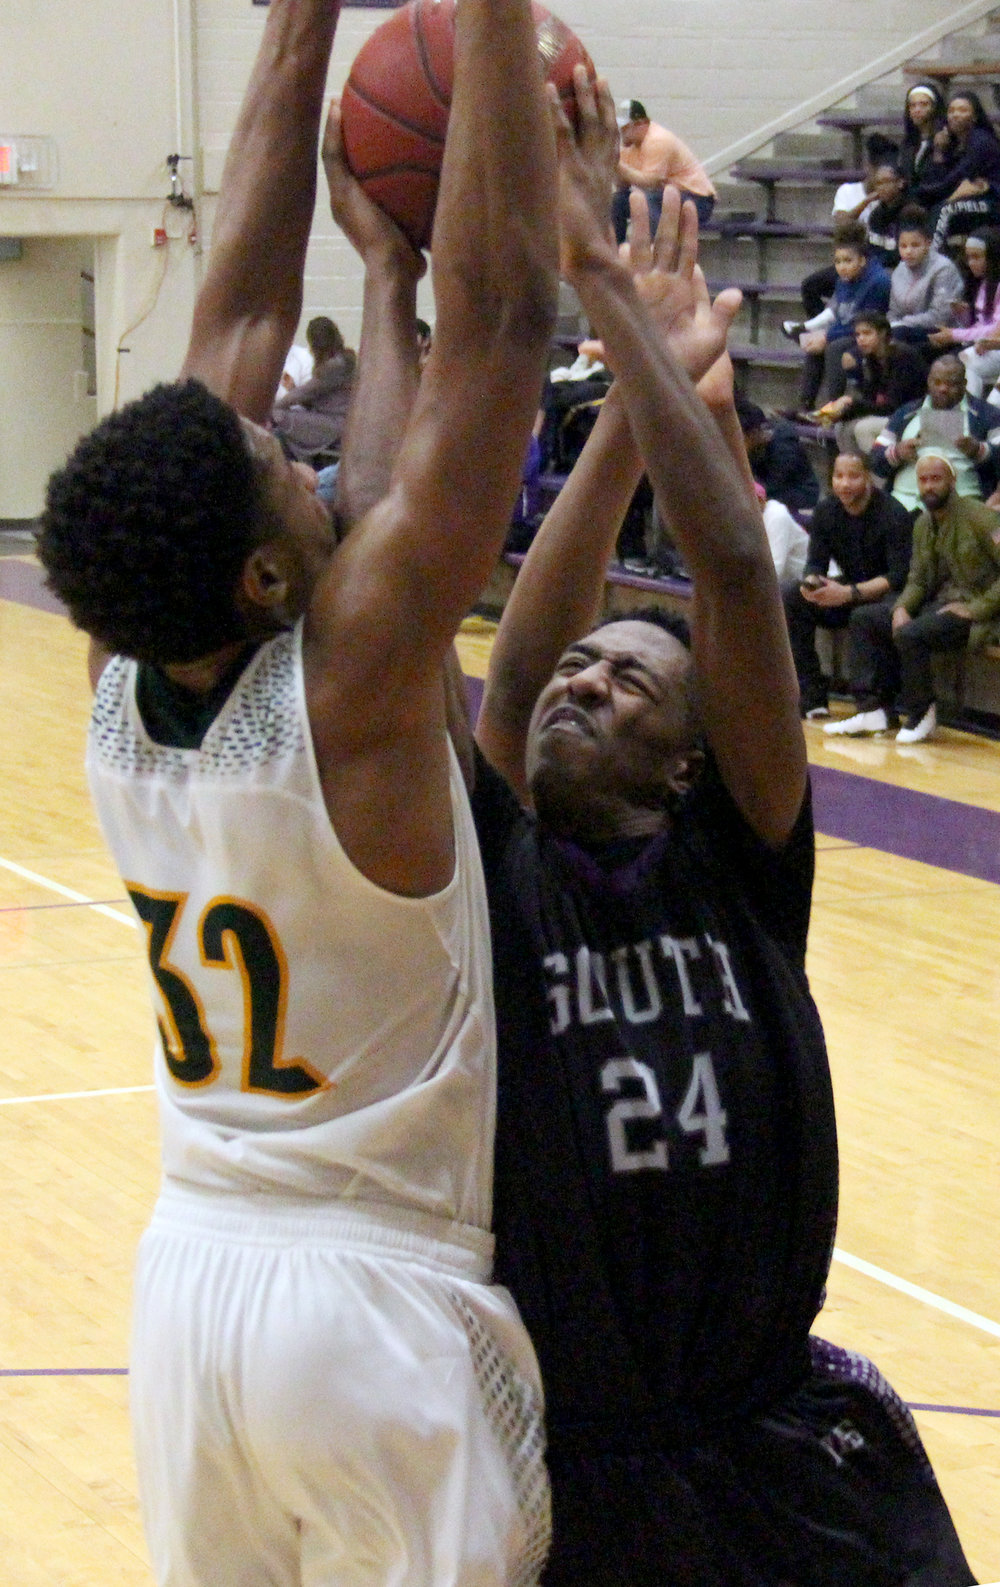 ROSS MARTIN/Citizen photo Park Hill South junior Saadique Perkins (24) goes up for a shot against Rock Bridge in the North Kansas City Invitational championship game Friday, Jan. 20 in North Kansas City, Mo.